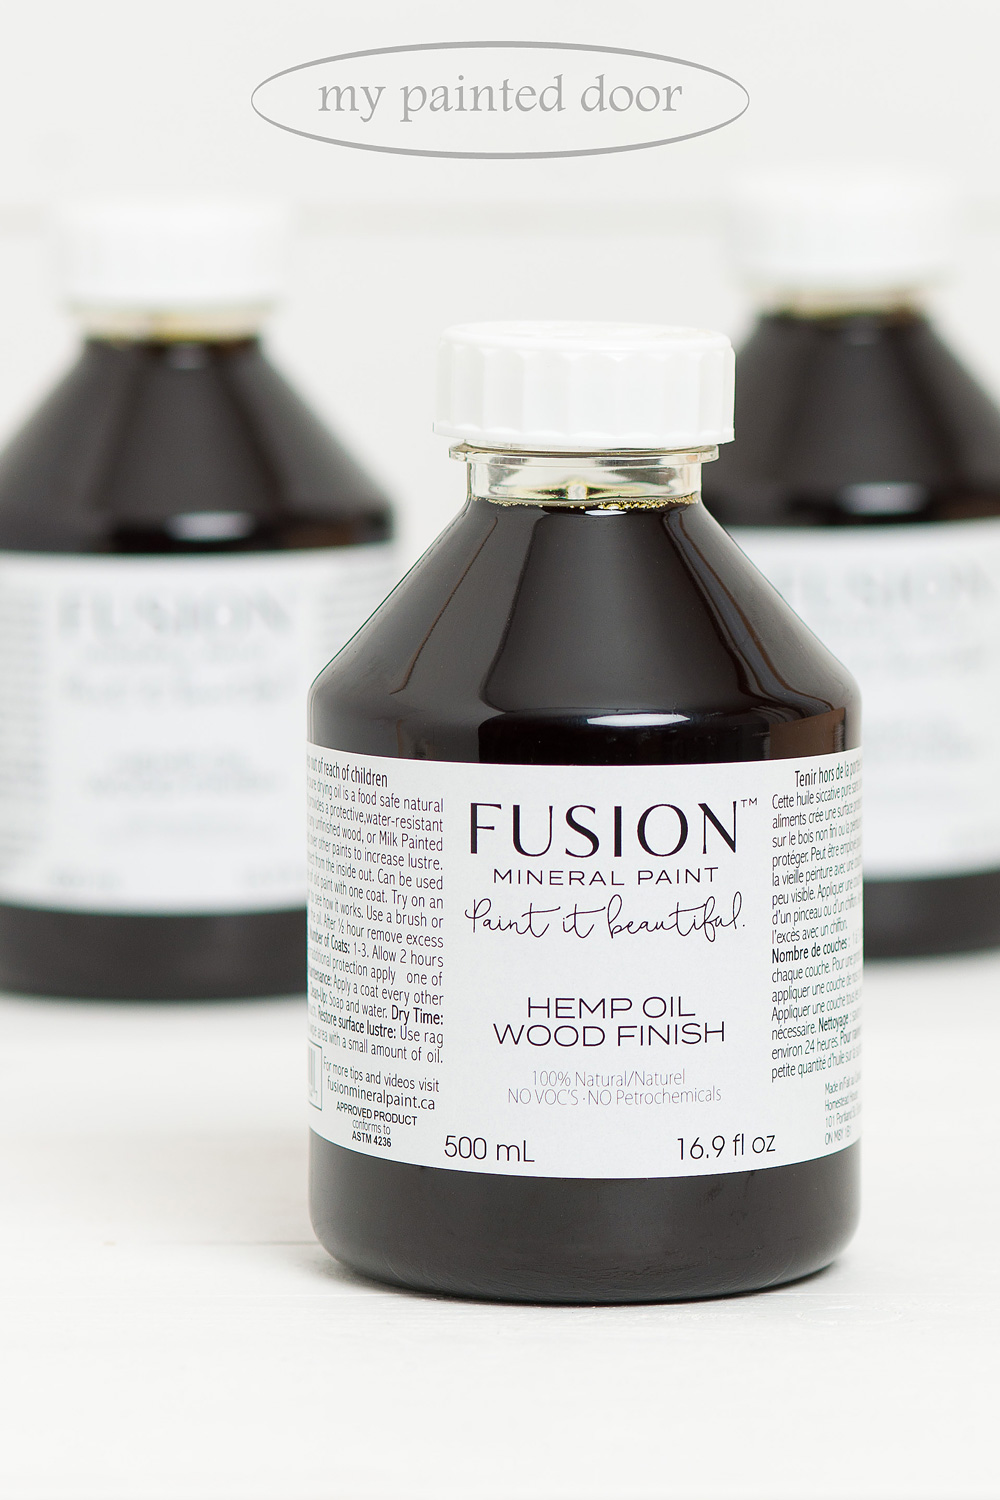 Fusion Mineral Paint Hemp Oil now available at My Painted Door.